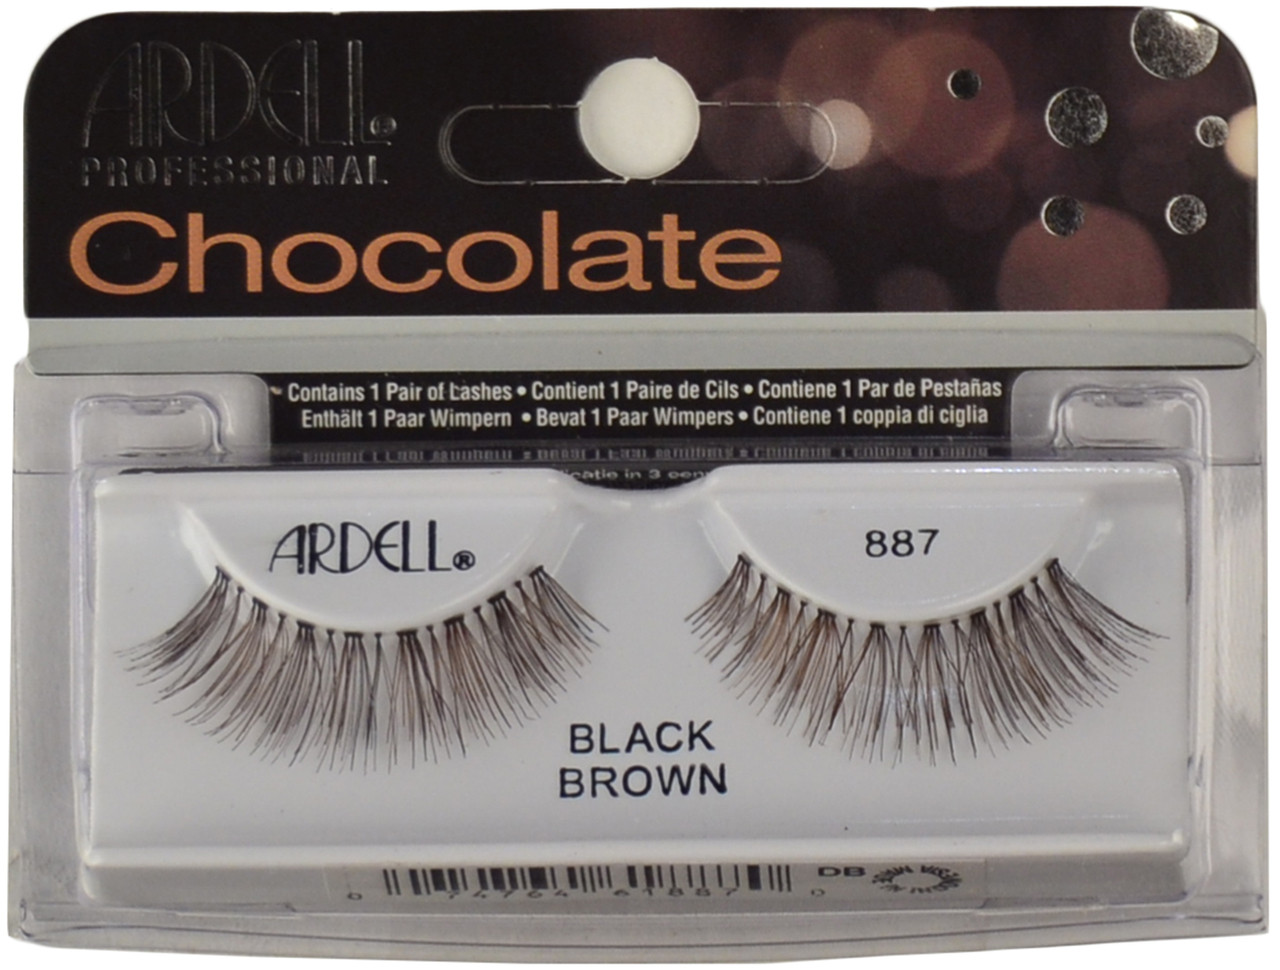 ccafb315a4b Ardell Lashes Chocolate 887 Black Brown Ardell Lashes, Free Shipping ...